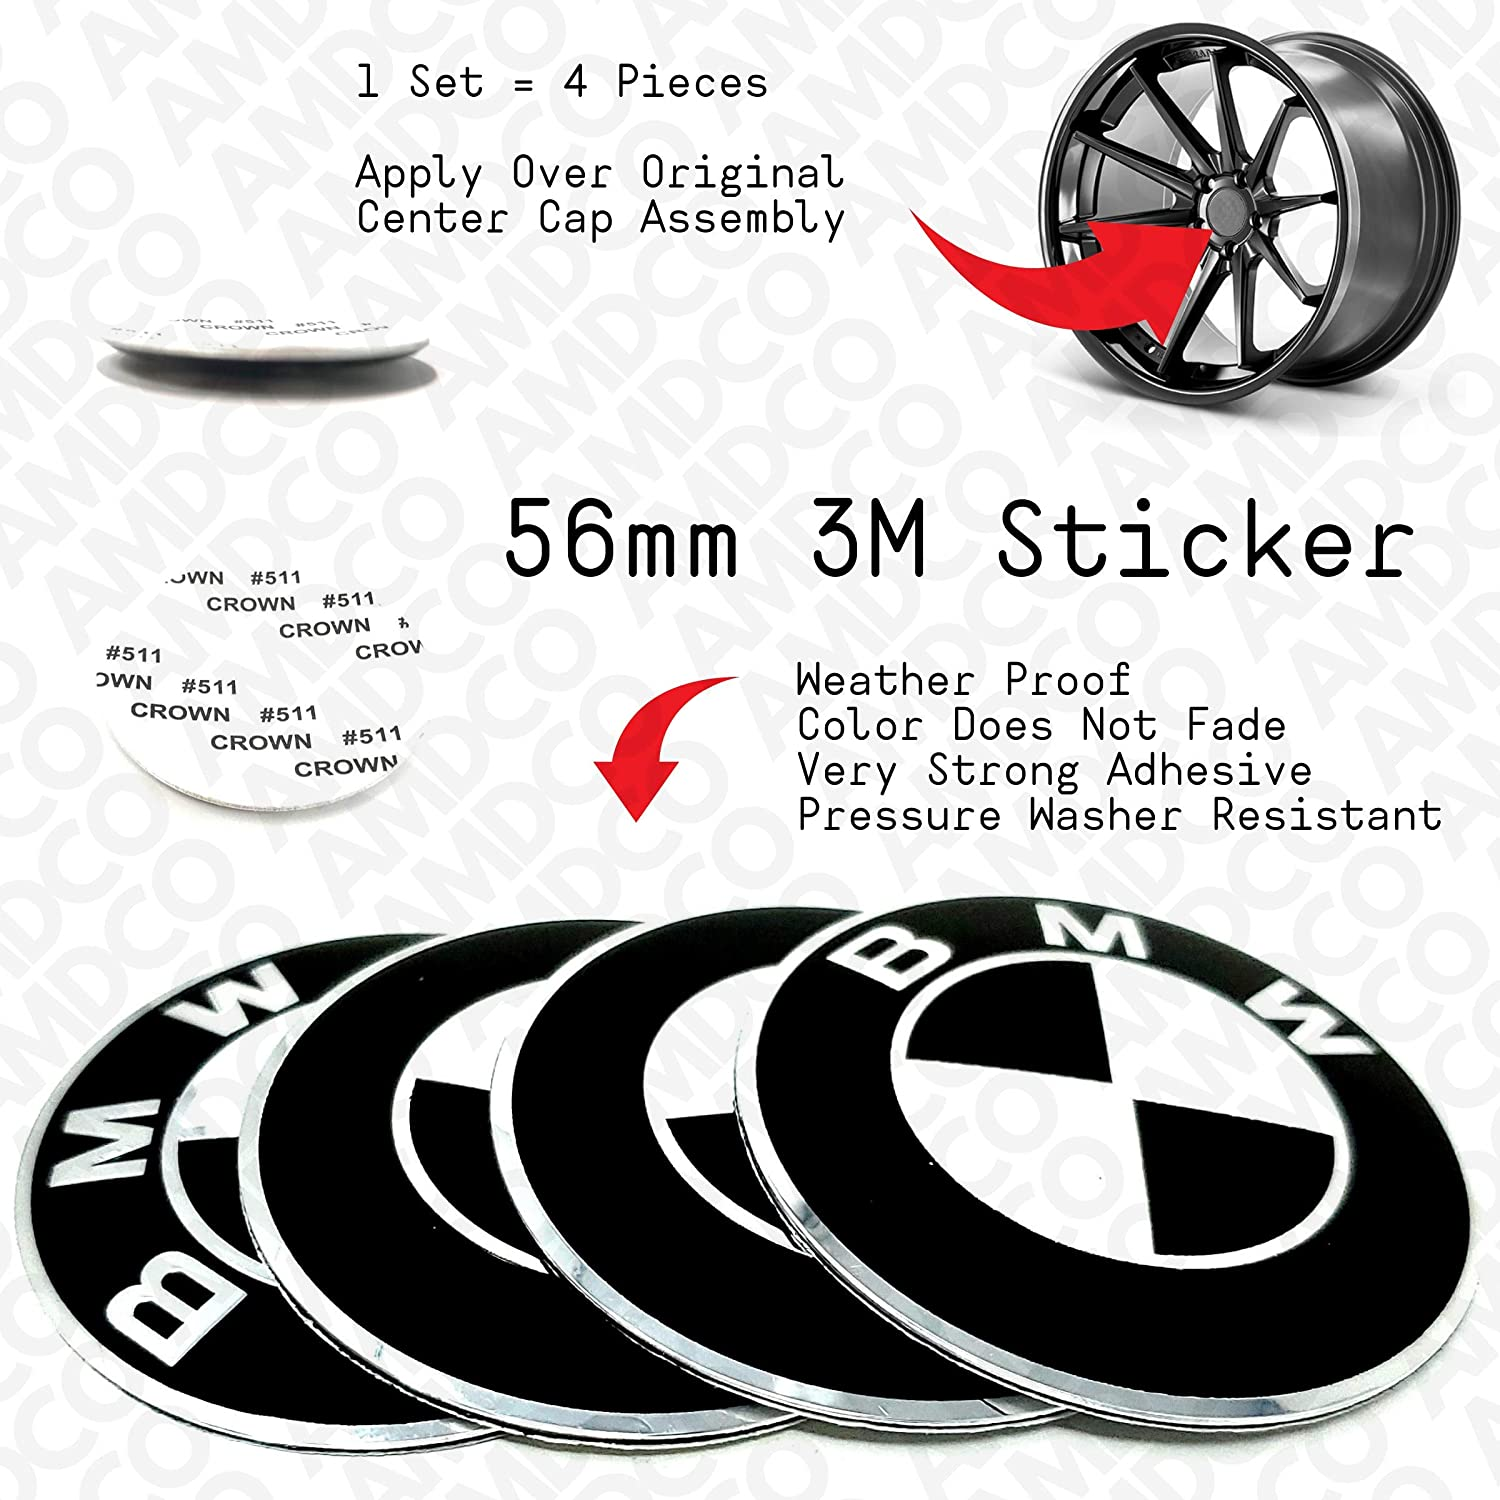 56MM BLACK Emblem Badge Stickers Decals with Strong 3M Includes instructions MEASURE Before Purchase Fitment Top Quality fit For BIMMER 2 3 4 5 6 7 X2 X3 X4 X5 X6 series M etc AMD pack of 4